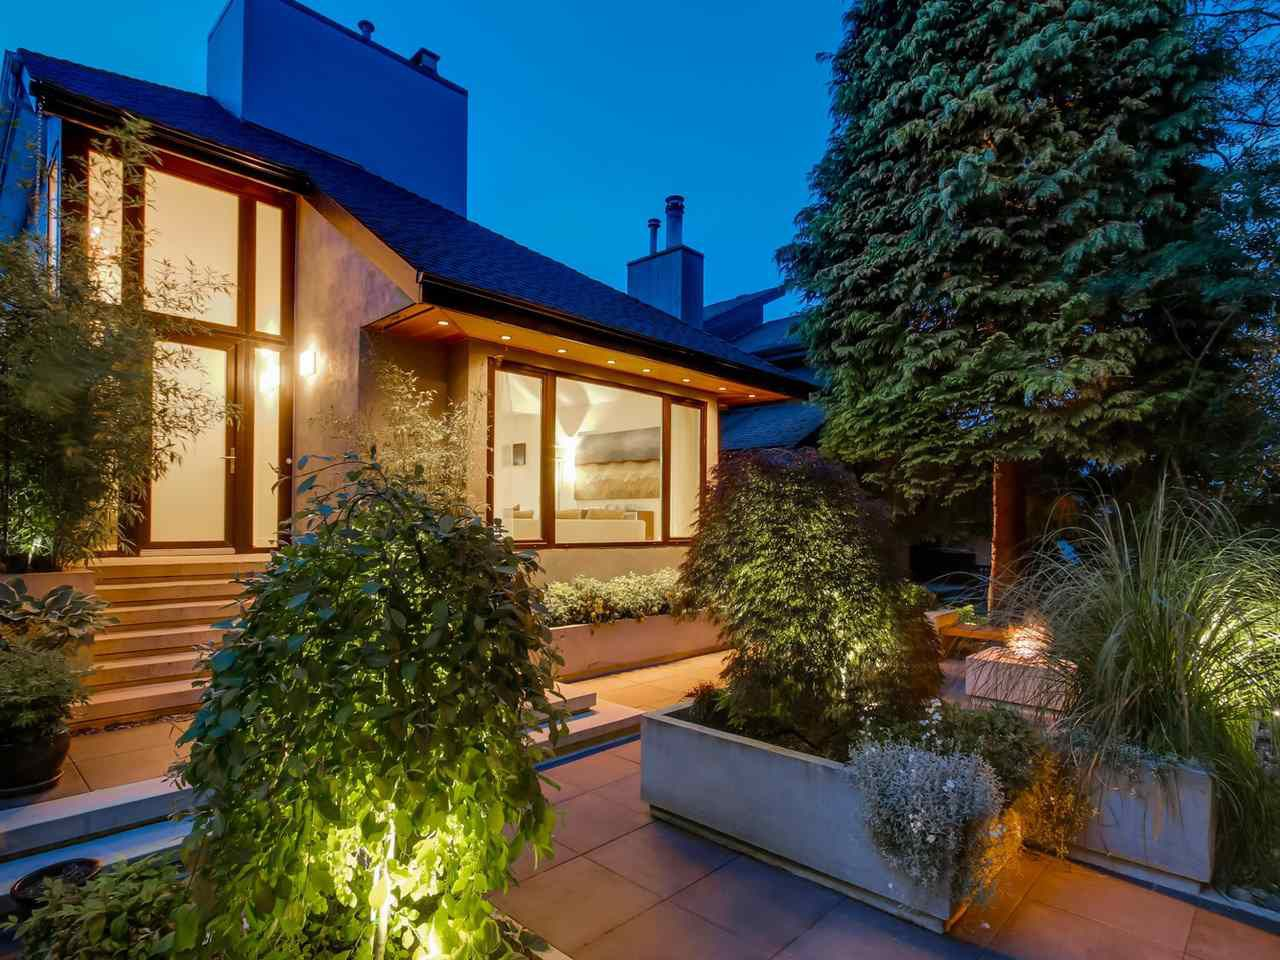 Main Photo: 3465 W 30TH AVENUE in Vancouver: Dunbar House for sale (Vancouver West)  : MLS®# R2074371